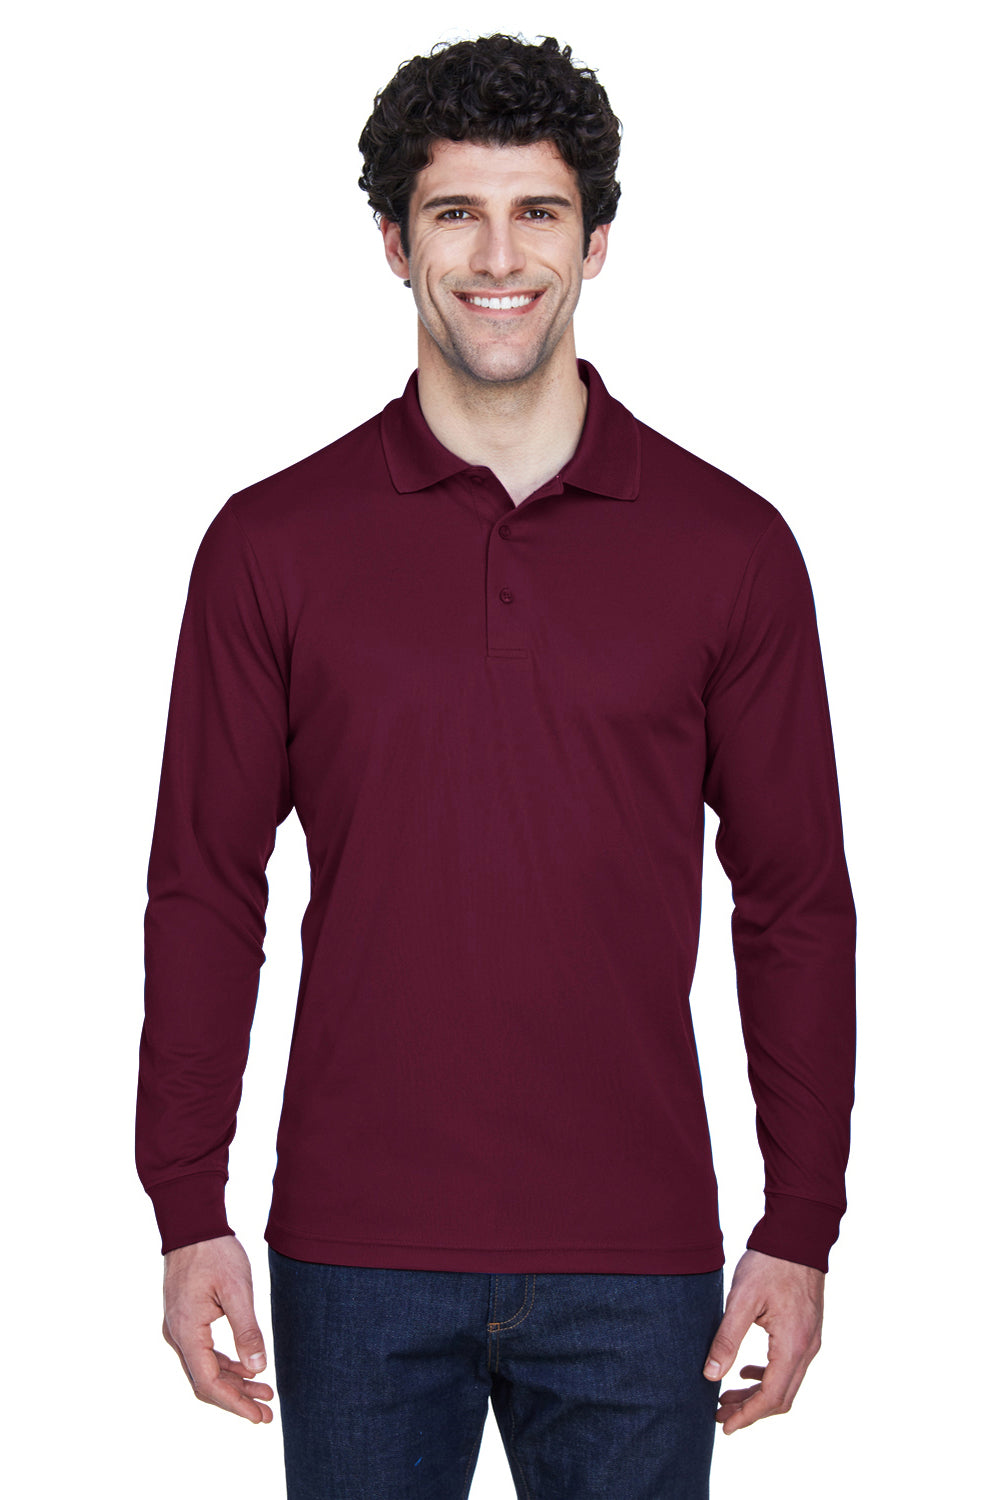 Core 365 88192 Mens Pinnacle Performance Moisture Wicking Long Sleeve Polo Shirt Burgundy Front